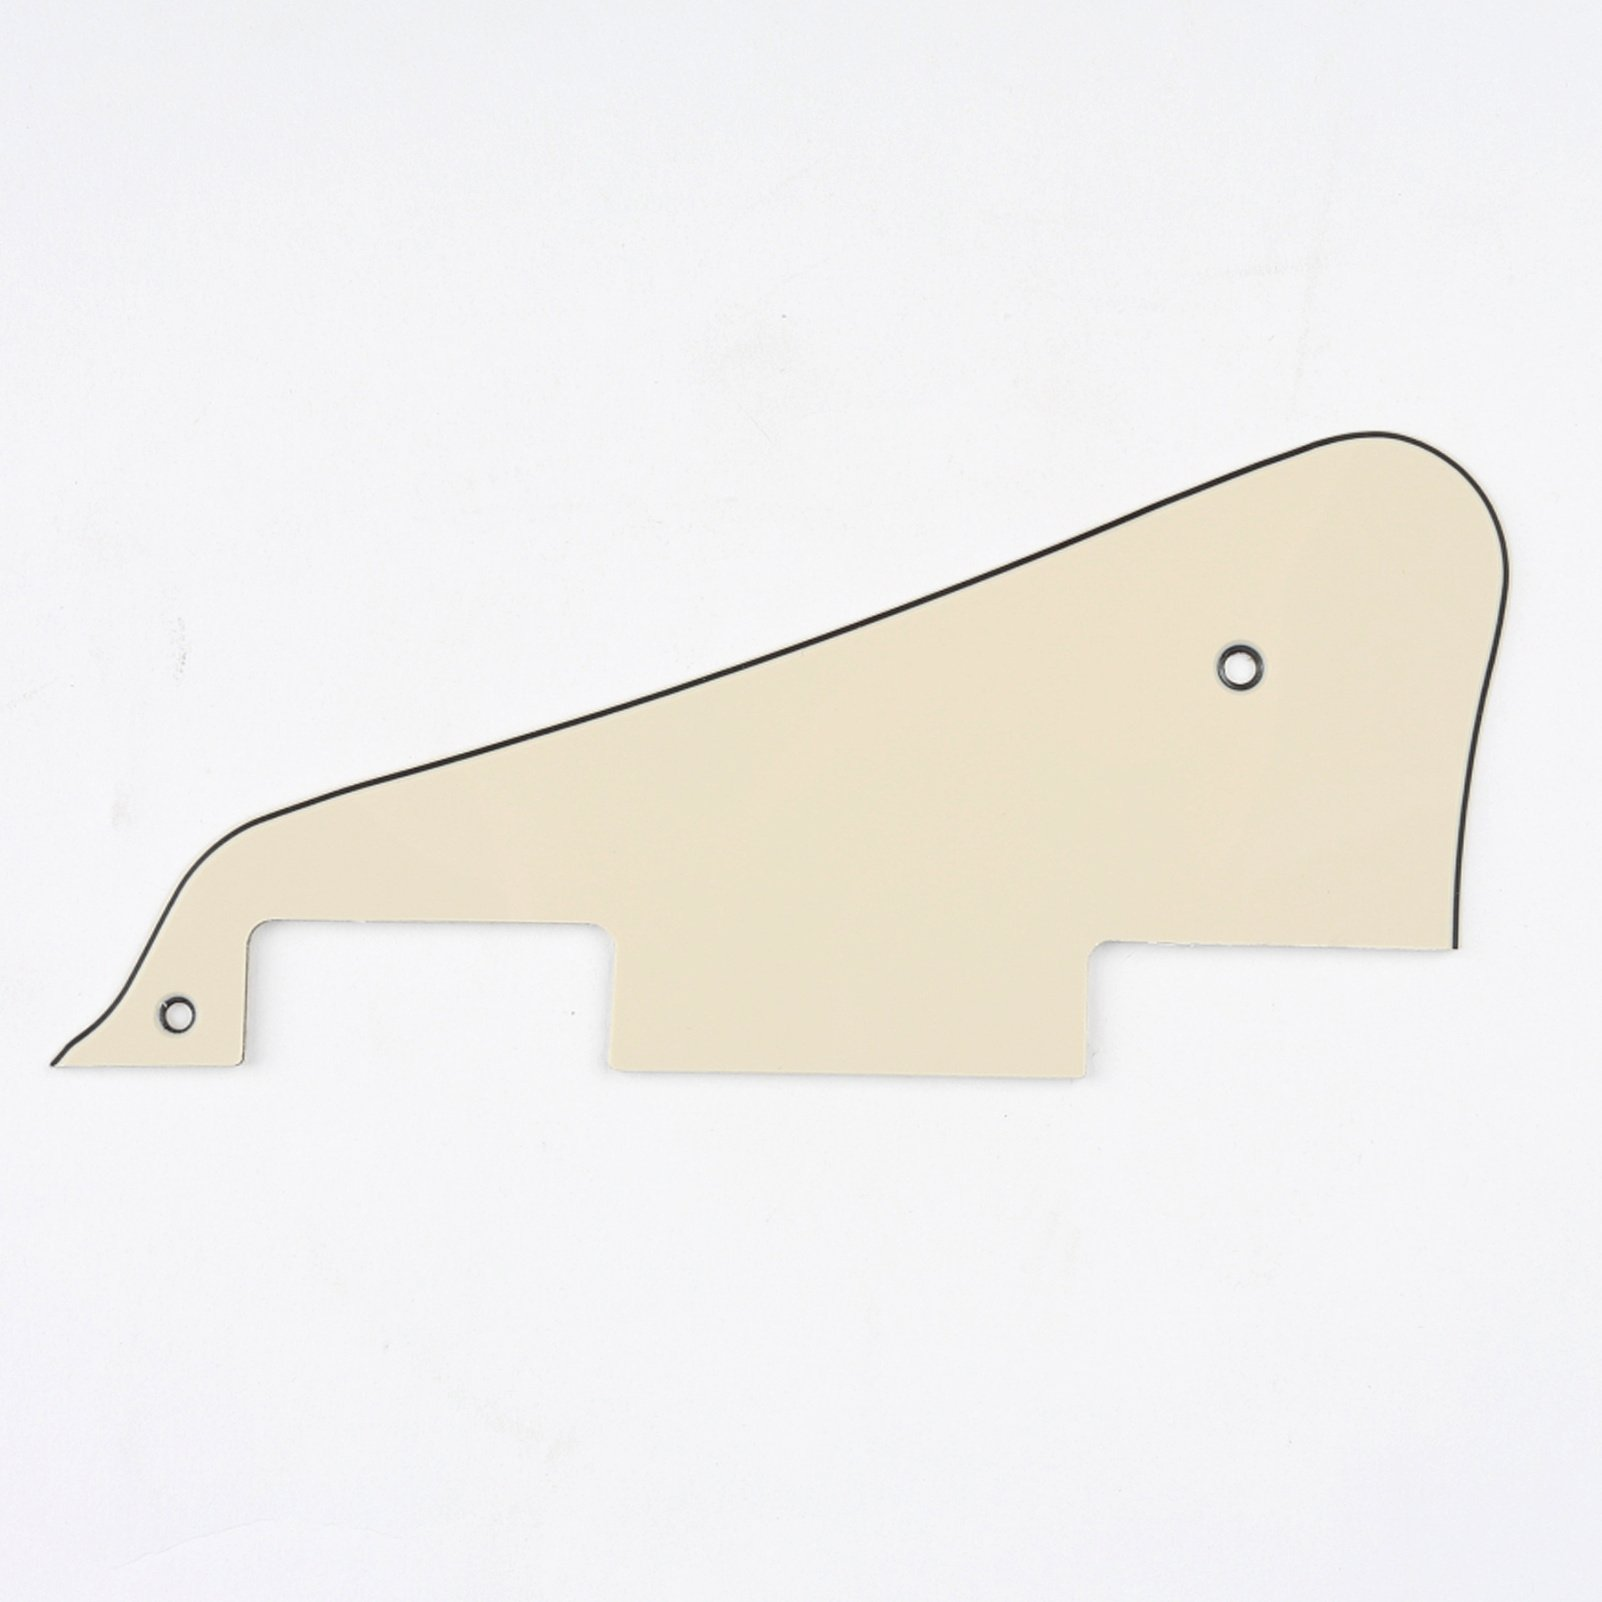 1Ply Cream Musiclily Pro Plastic Guitar Pickguard for 2006-Present Modern Style Epiphone Les Paul